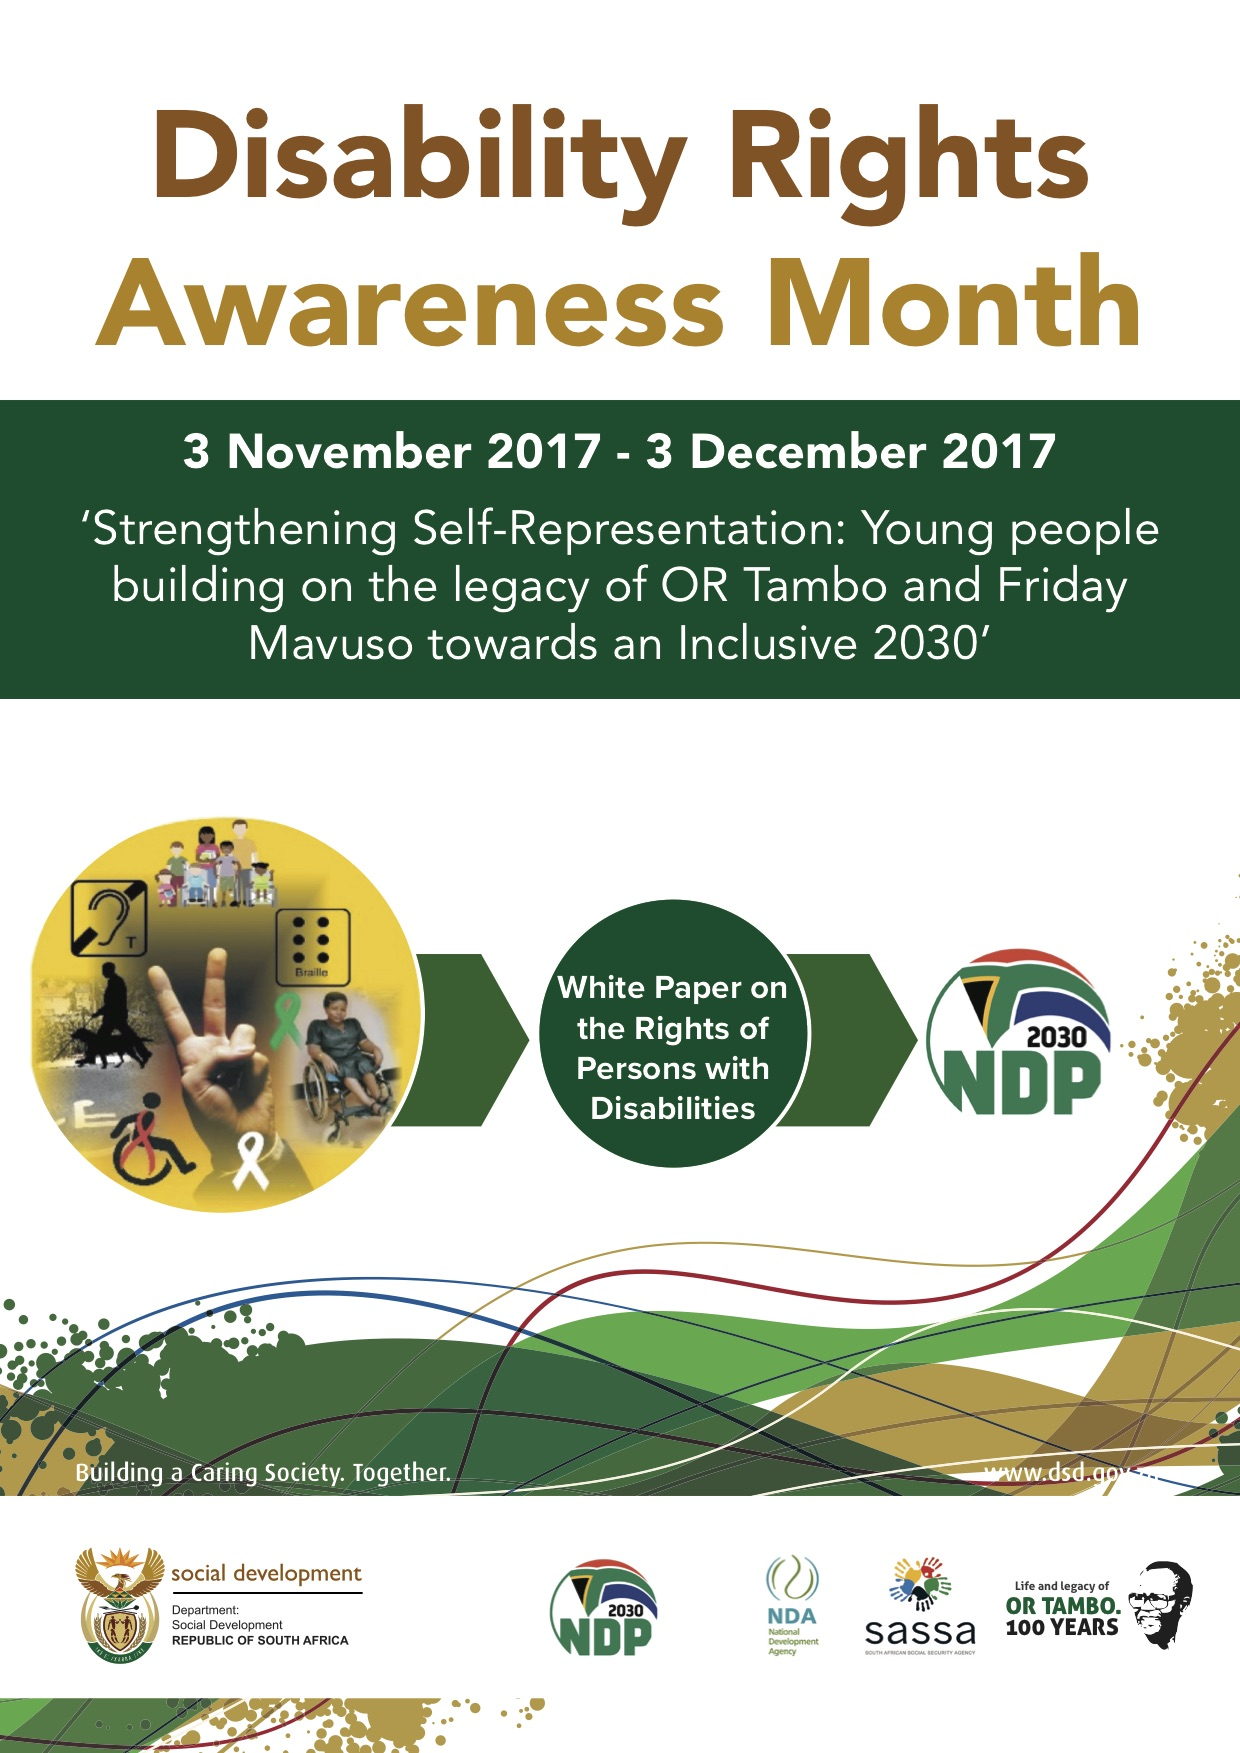 The Department of Social Development launched Disability Rights Awareness Month which runs from 03 November to 03 December 2017. The month is dedicated to raising awareness to persons with disabilities. The focus this year will be on persons with intellectual disabilities enhancing self representation.